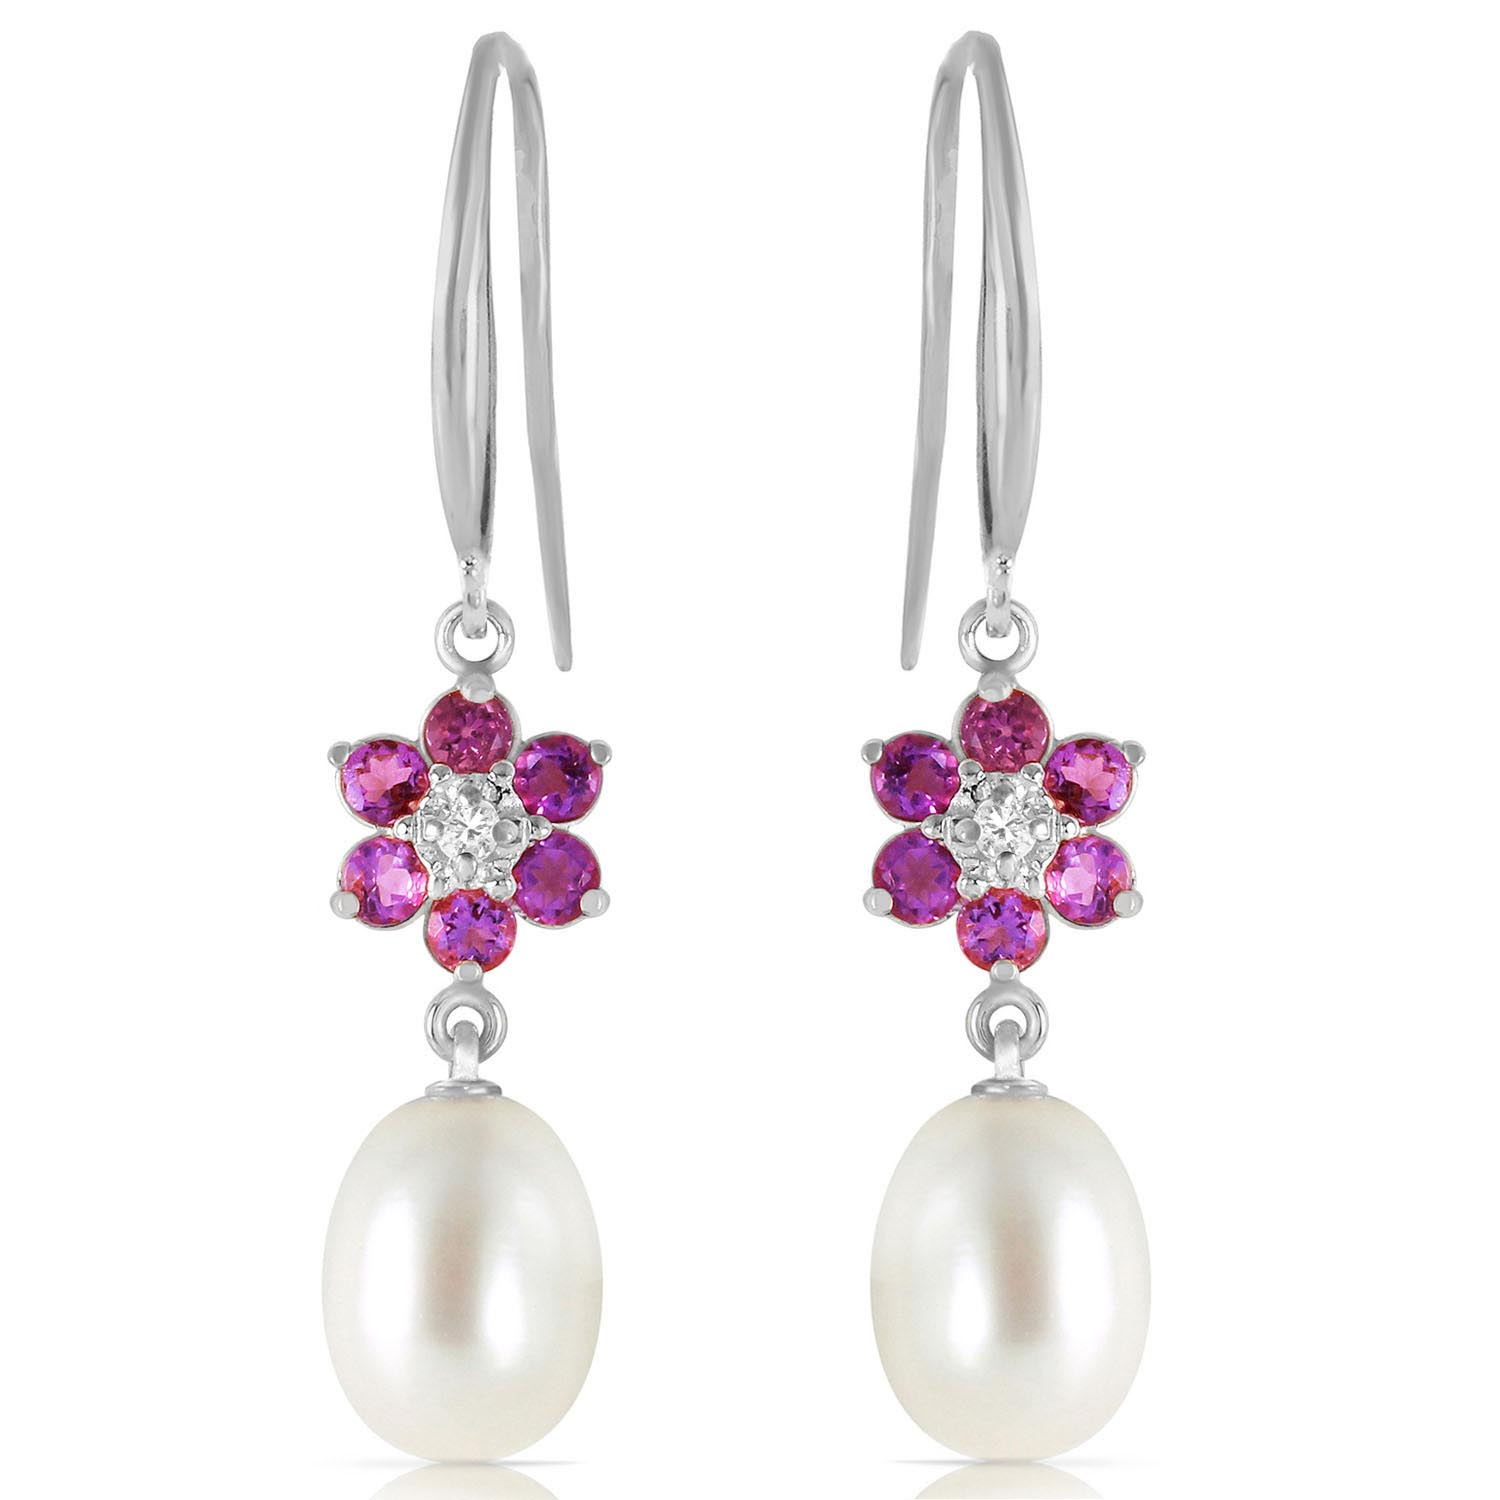 Pearl, Diamond and Amethyst Daisy Chain Drop Earrings 8.95ctw in 14K White Gold